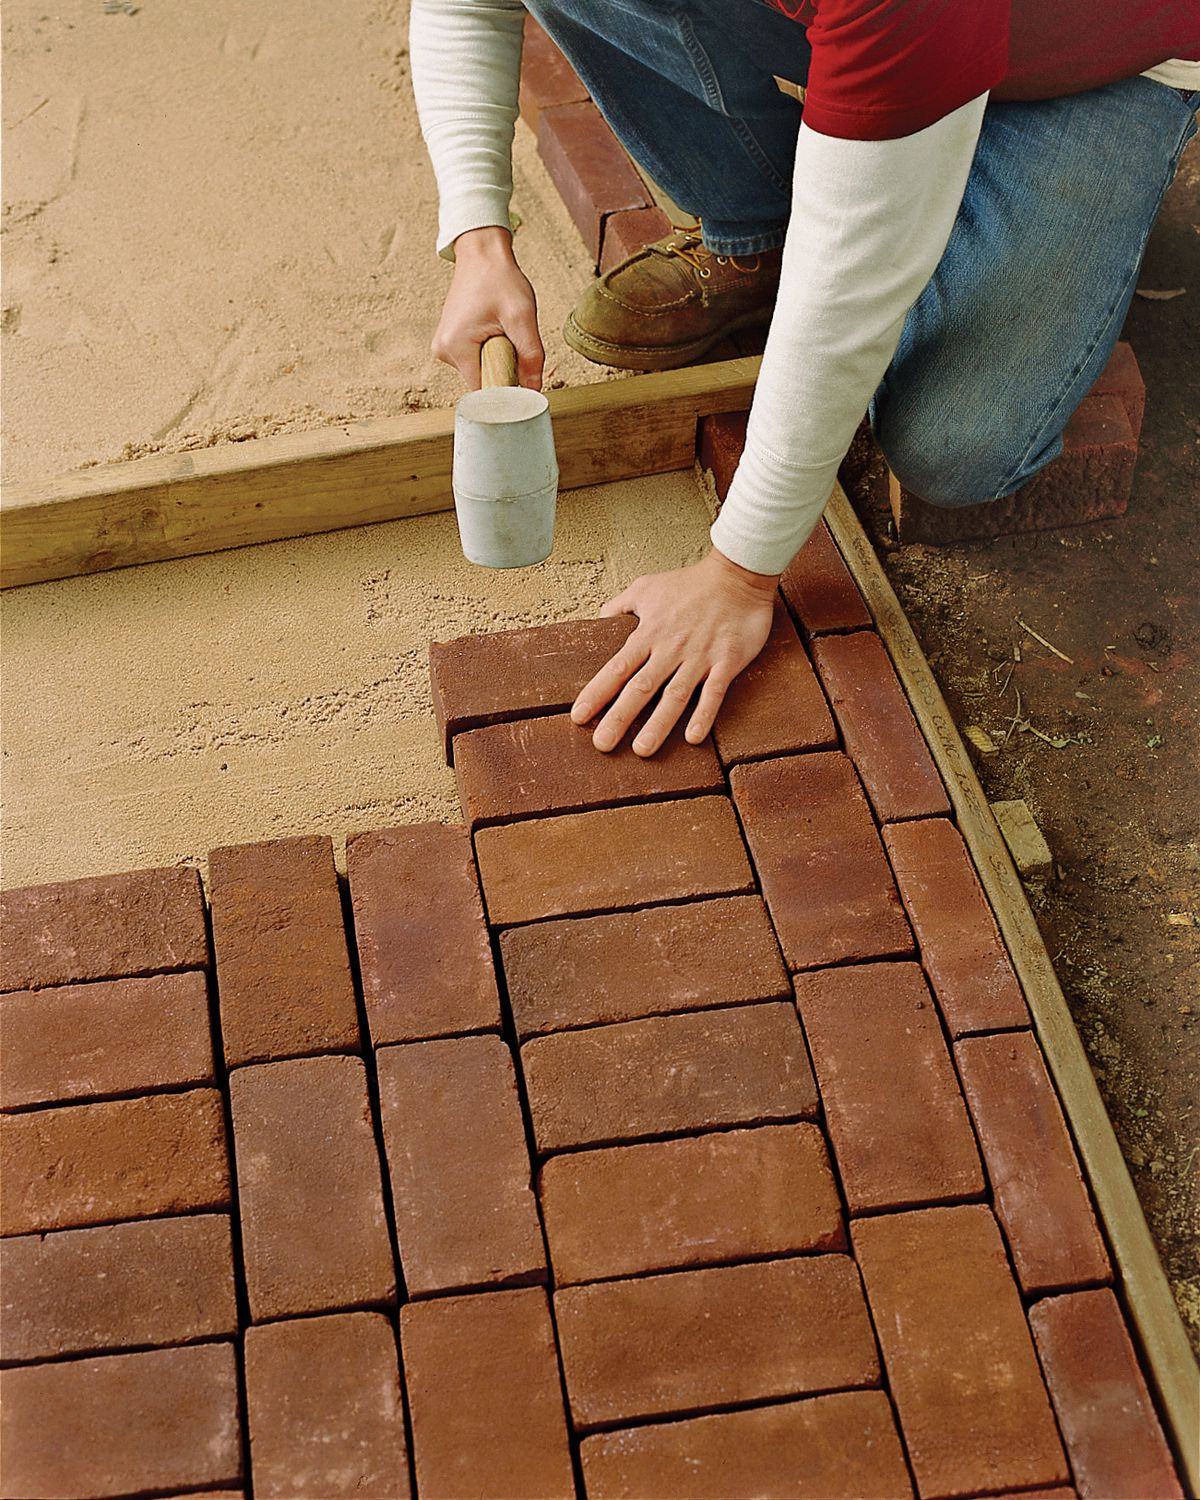 Man Fills In Pathway With More Bricks